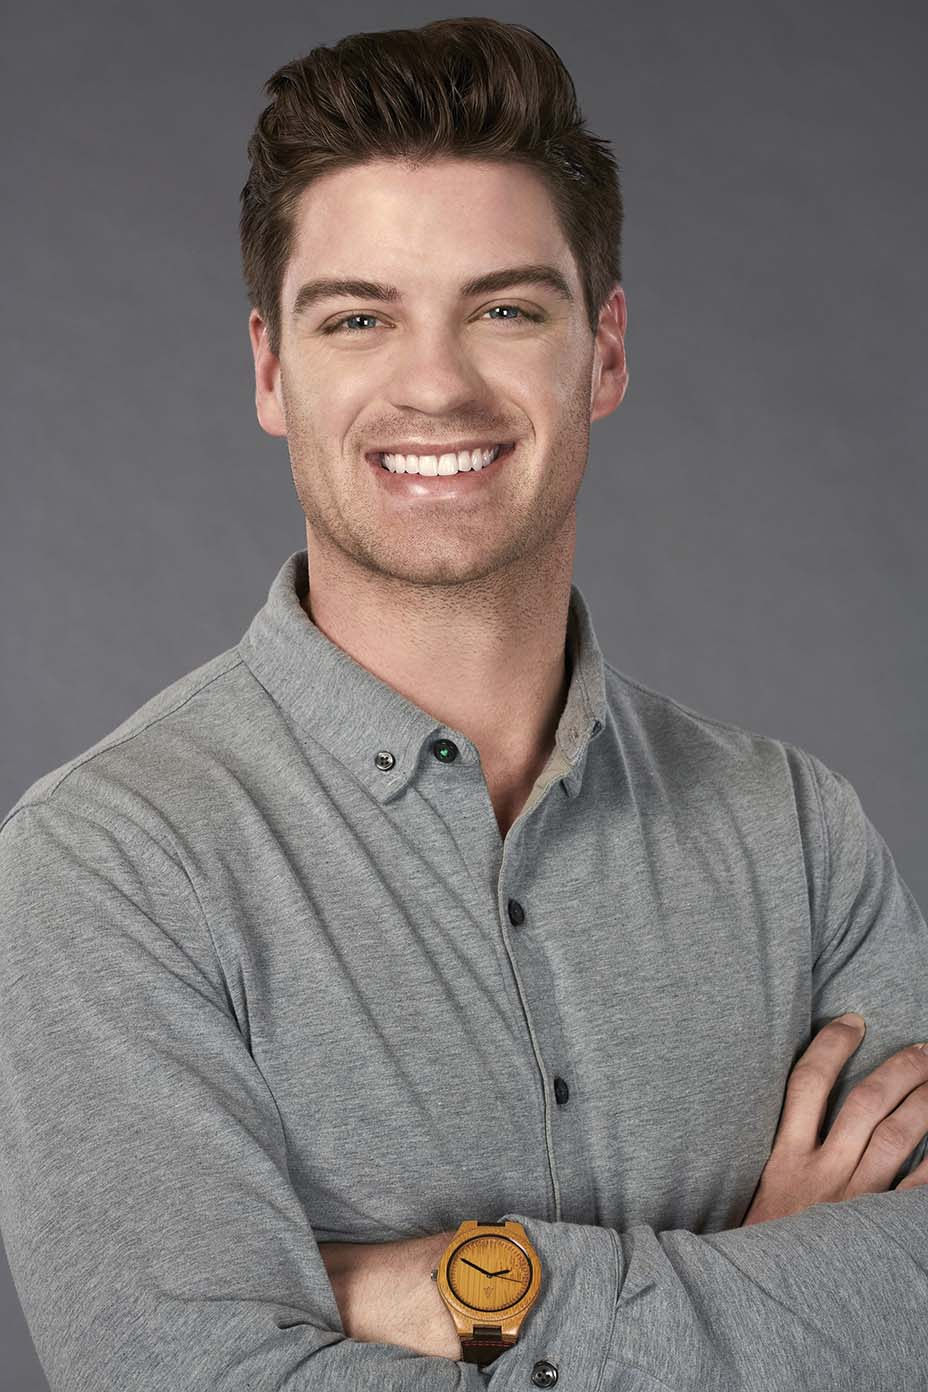 Garrett, 27 - A golf pro from Birmingham, ALGarrett may be a good-looking pro golfer, but he's really just a humble country boy enjoying life in Alabama. When he's not practicing his putting on the green, he enjoys going to church, running and drinking beers with his friends. Garrett's sister-in-law signed him up for The Bachelorette because she sees so many similarities between him and Hannah. Only time will tell if this match is a hole-in-one or a total mulligan.He once snuck into Mississippi State's football stadium after hours and made out with his girlfriend on the 50-yard line. He says the most romantic city in the world is Savannah, Georgia.